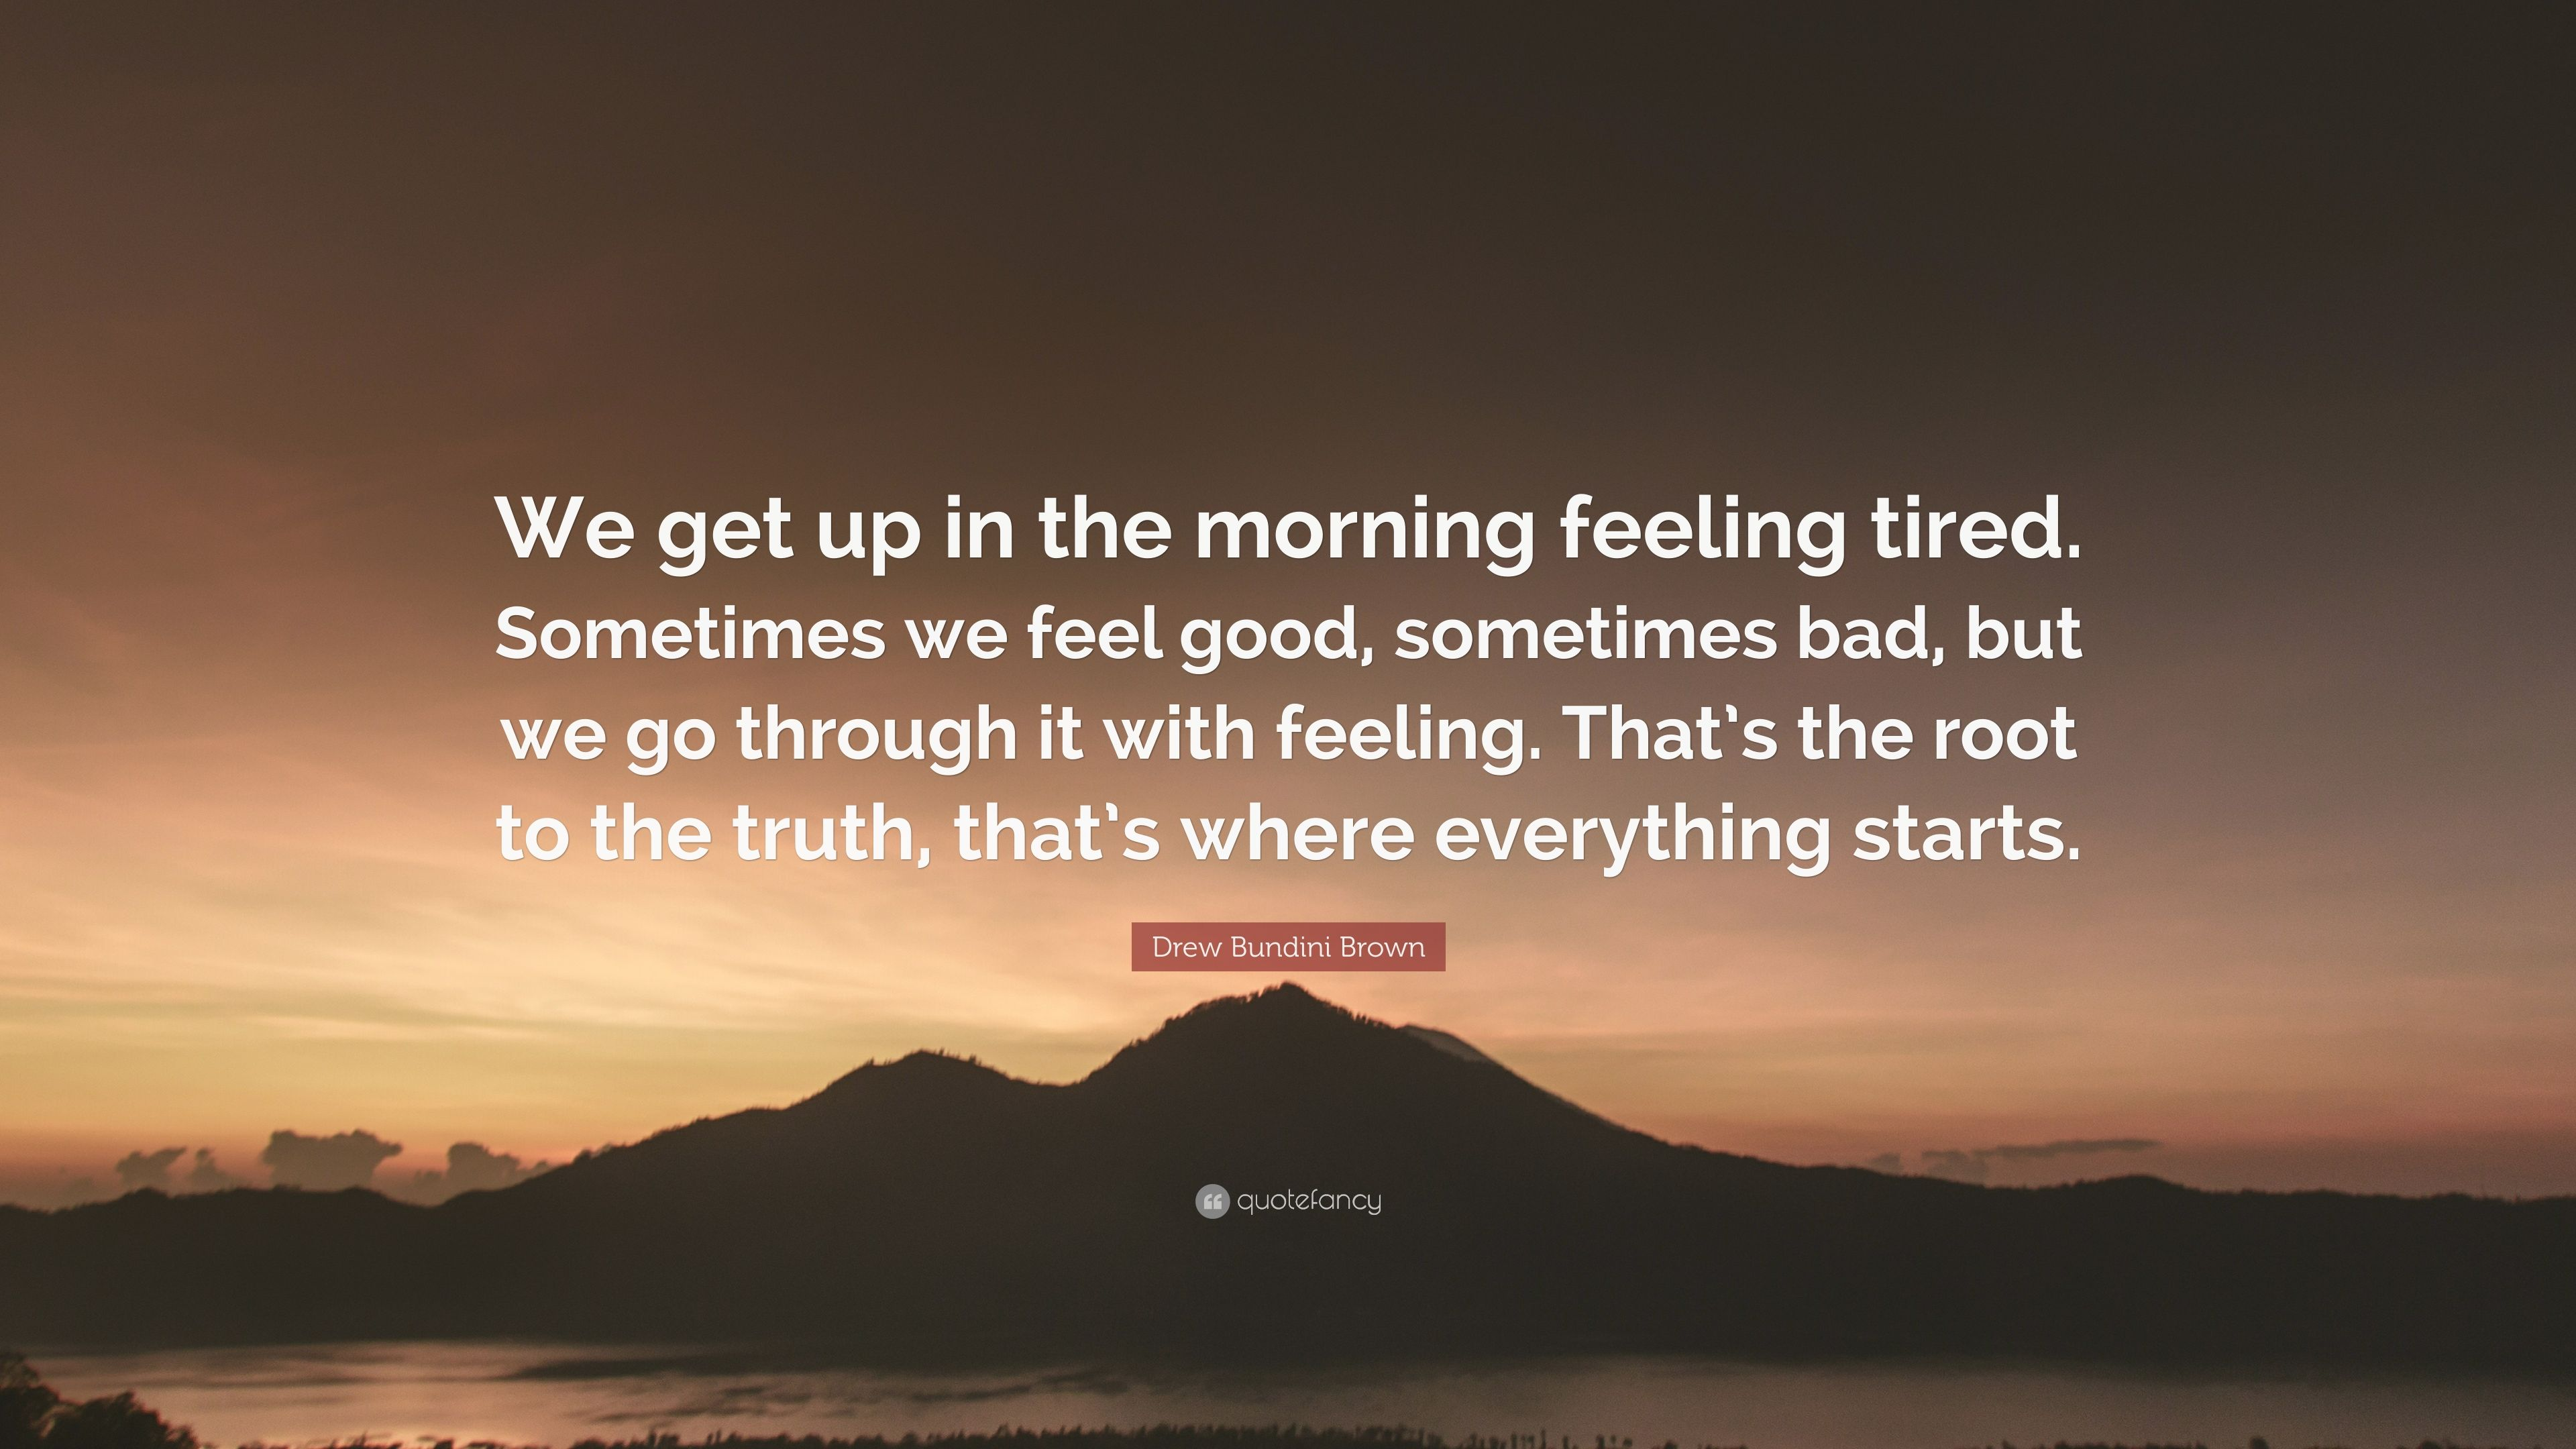 Drew Bundini Brown Quote We Get Up In The Morning Feeling Tired